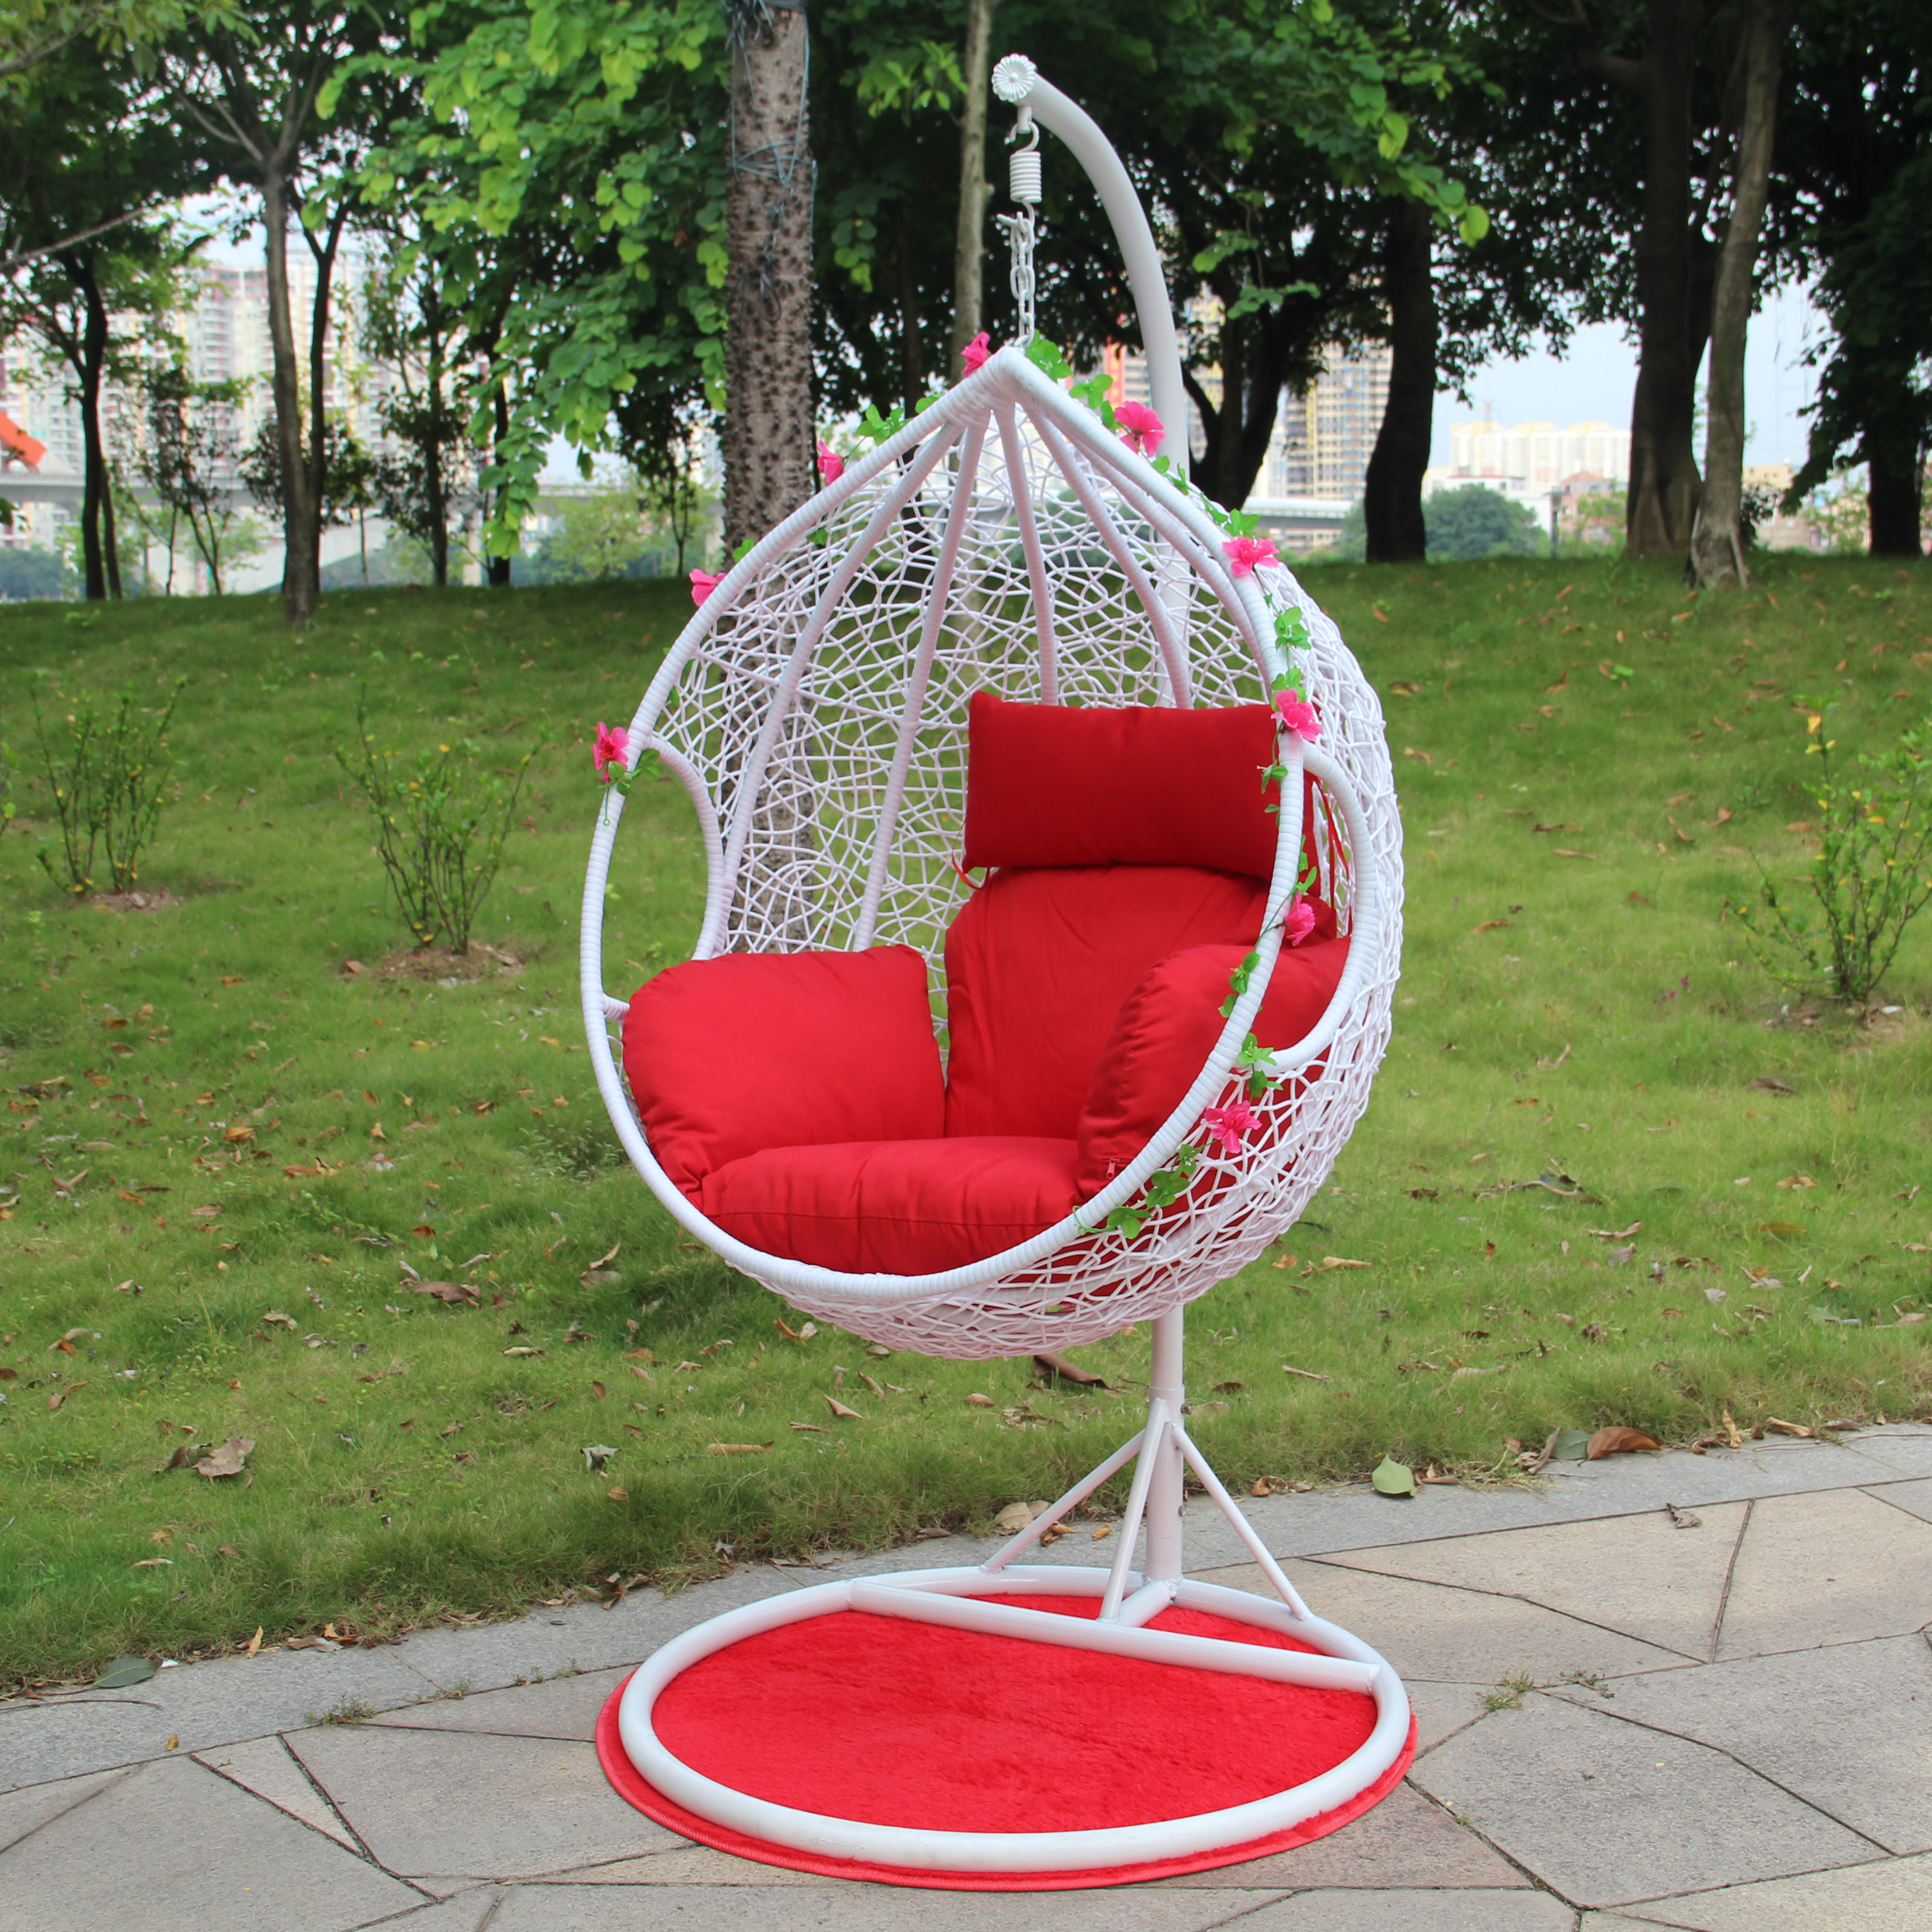 Hanging Basket Chair Indoor Video Game Chairs For Adults Cheap Single Double Rattan Swing